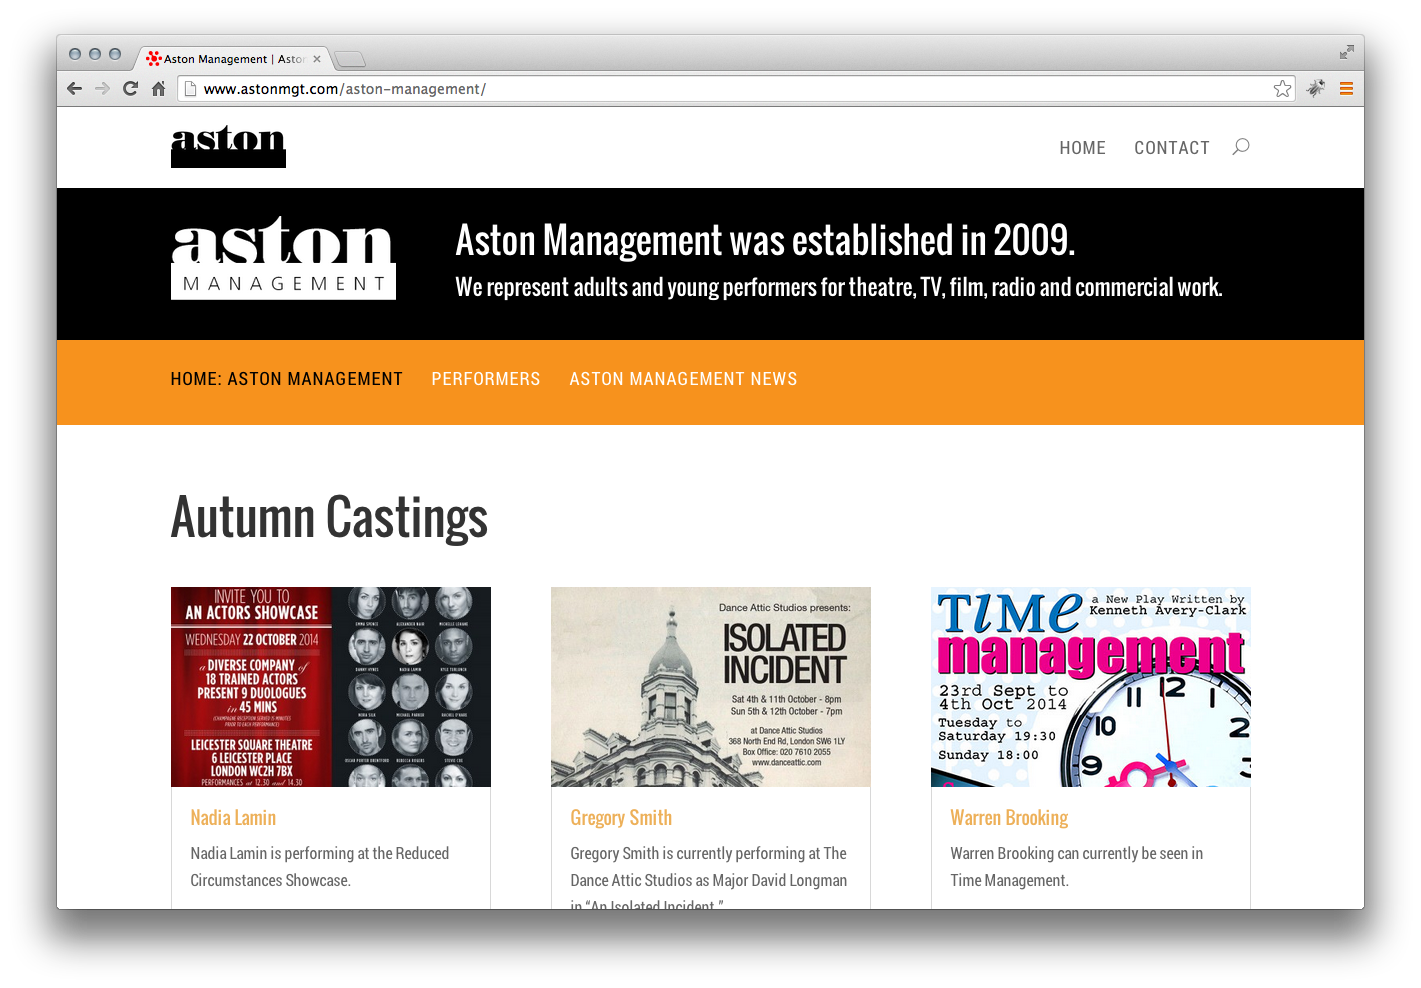 Aston Management